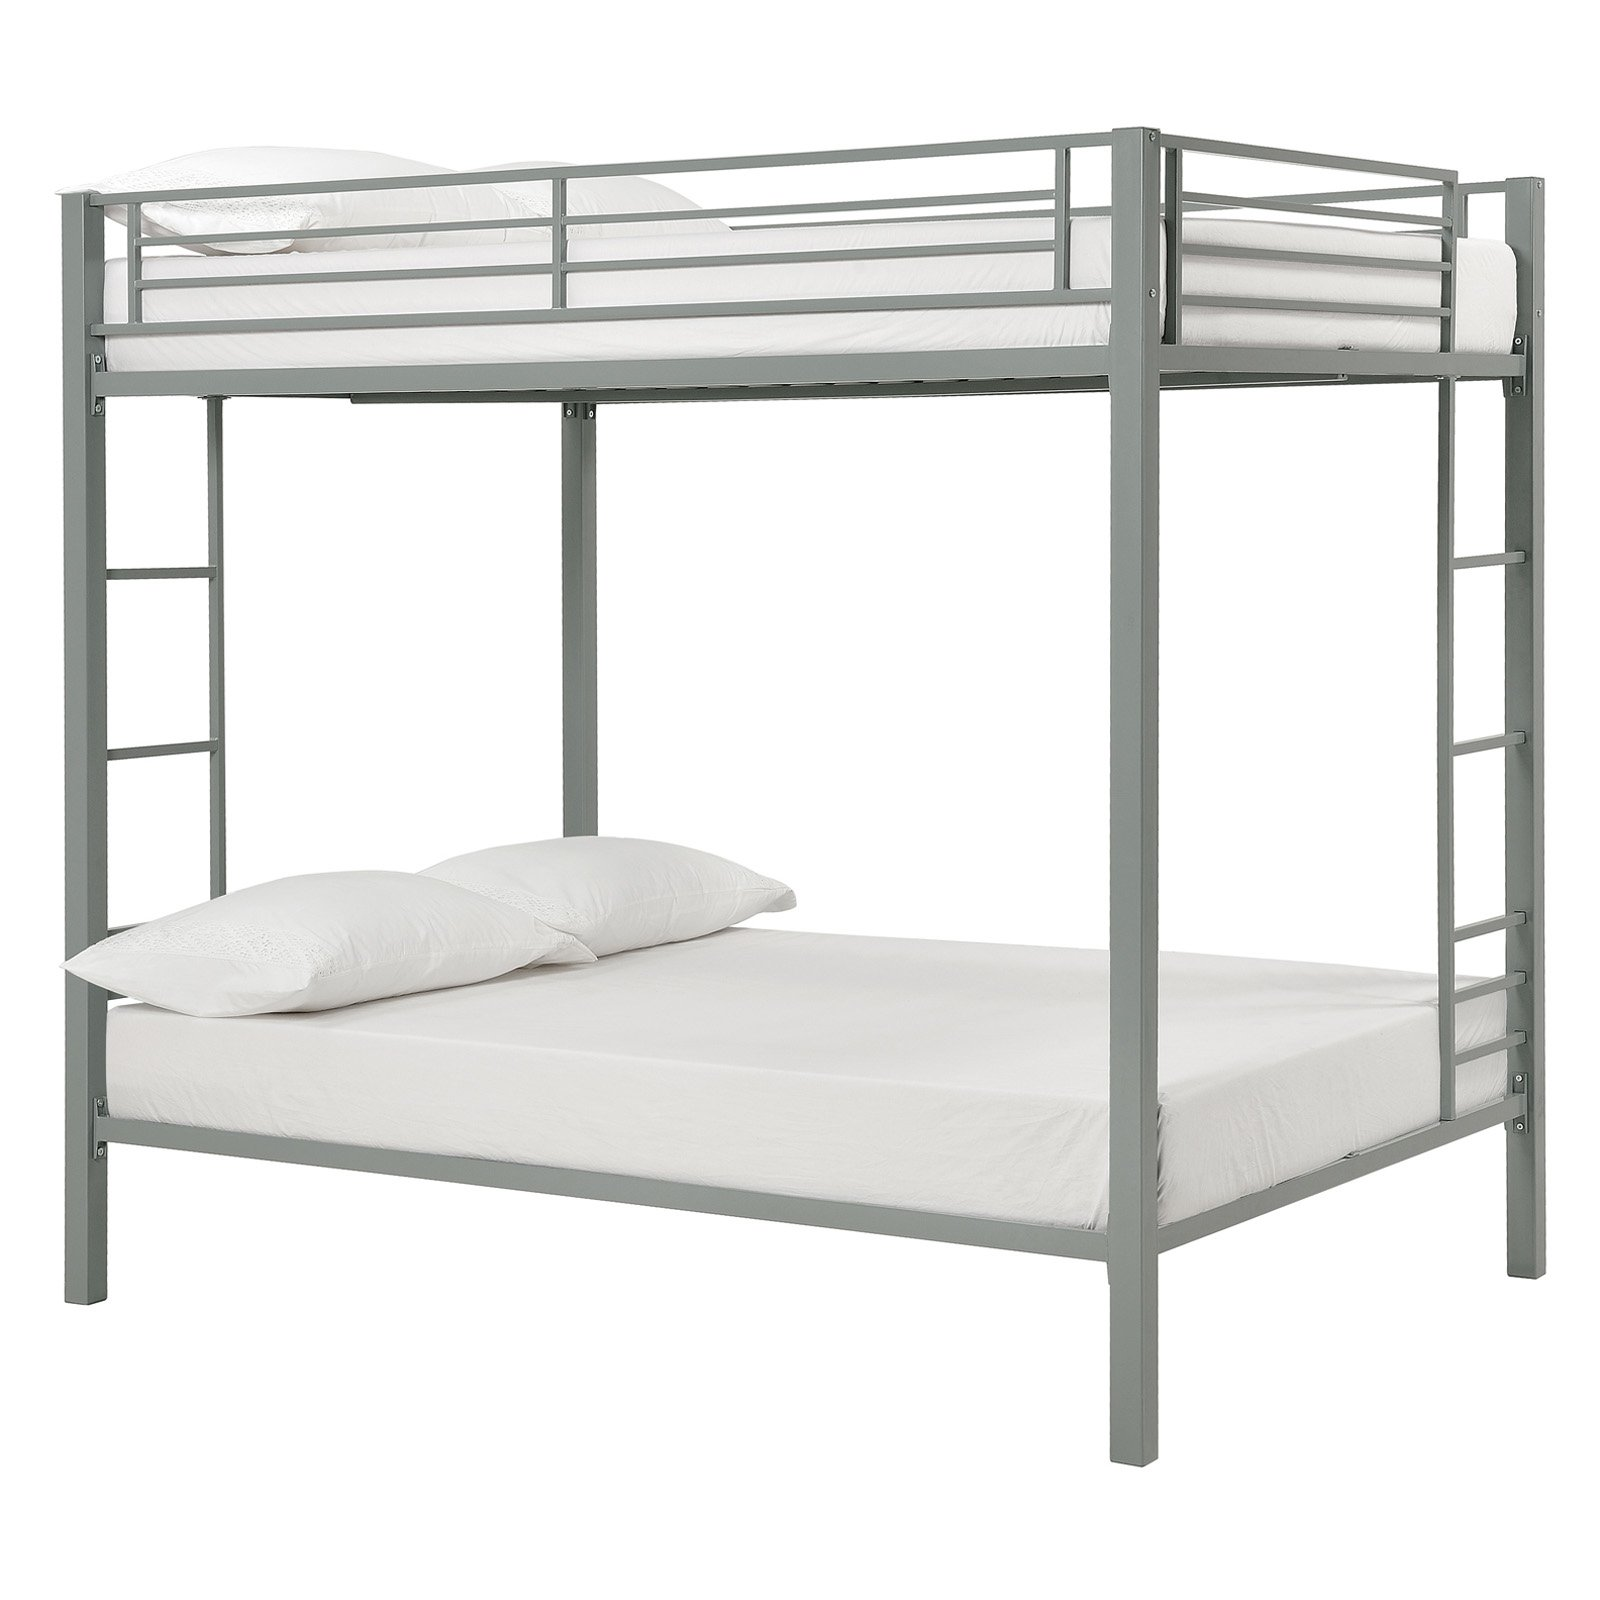 Dorel Full Over Full Metal Bunk Bed, Multiple Finishes by Dorel Home Products